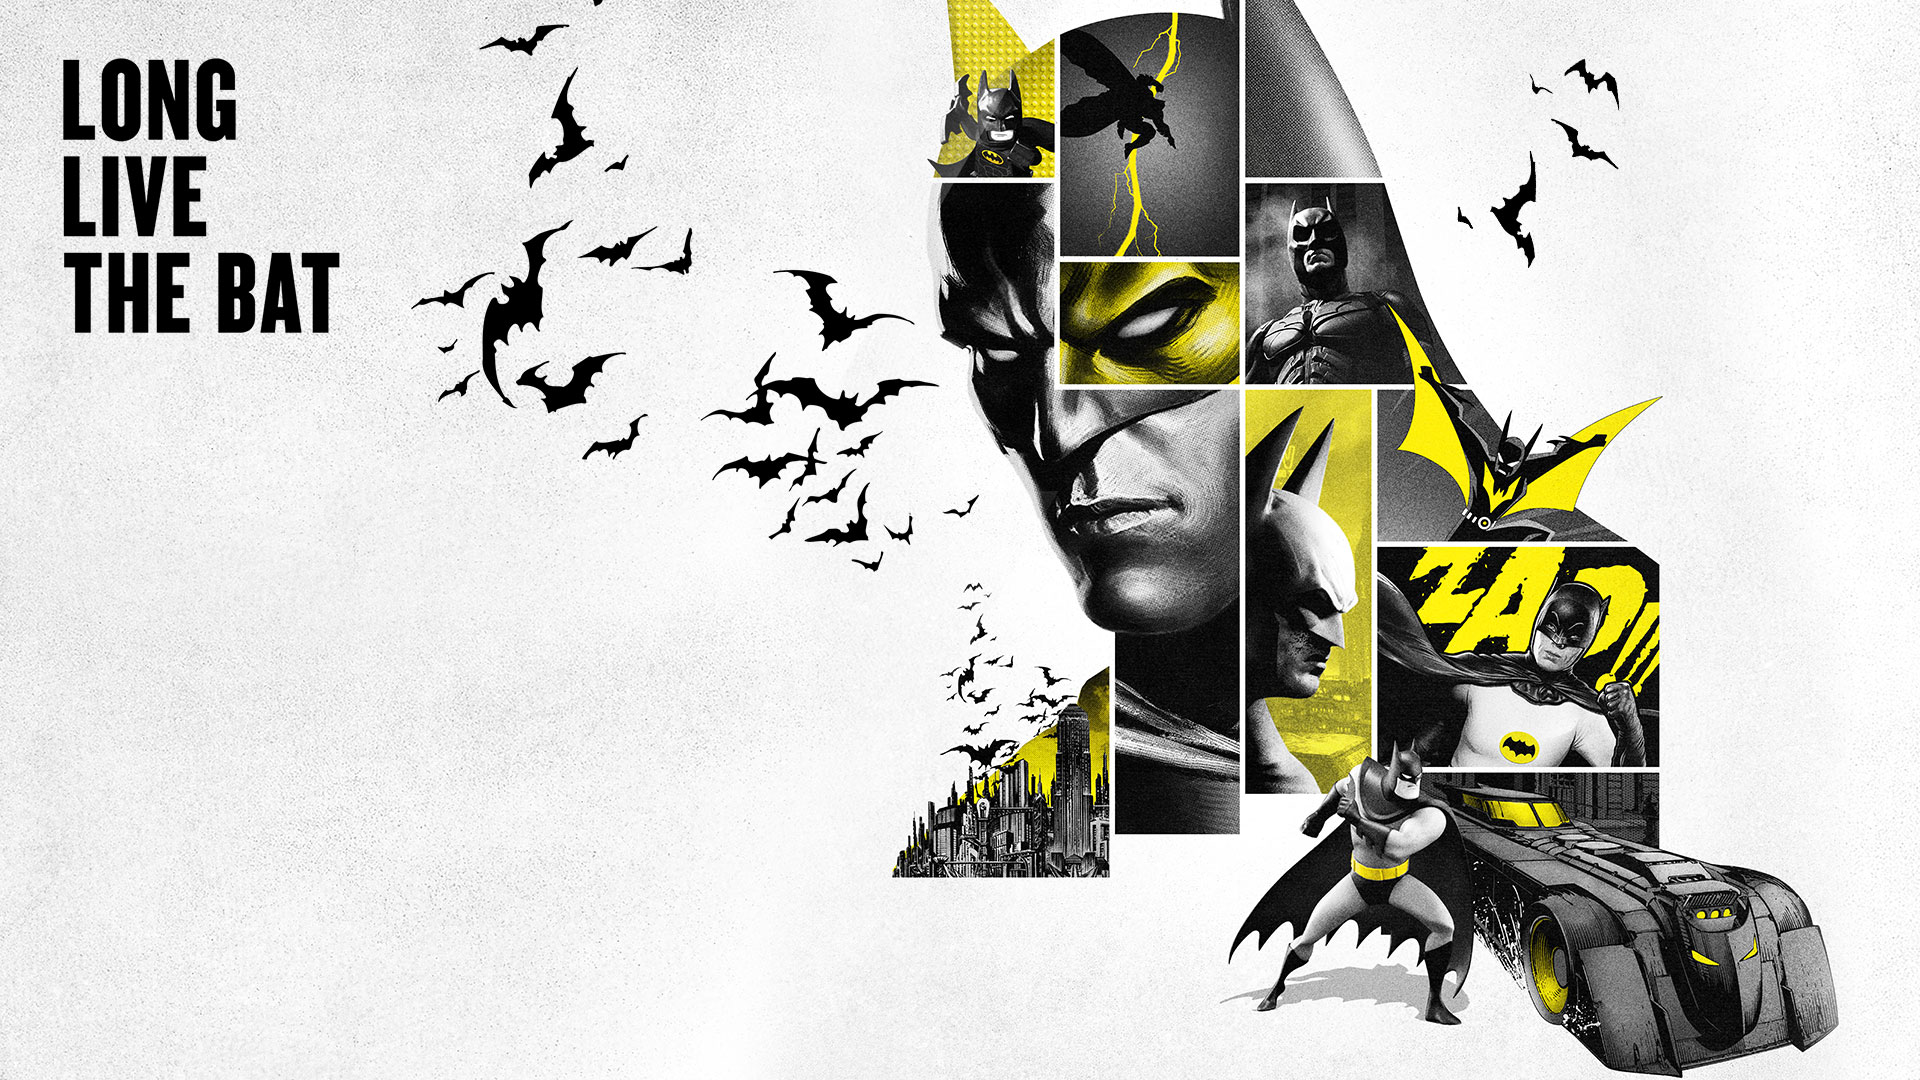 Various images of Batman with the words Long Live